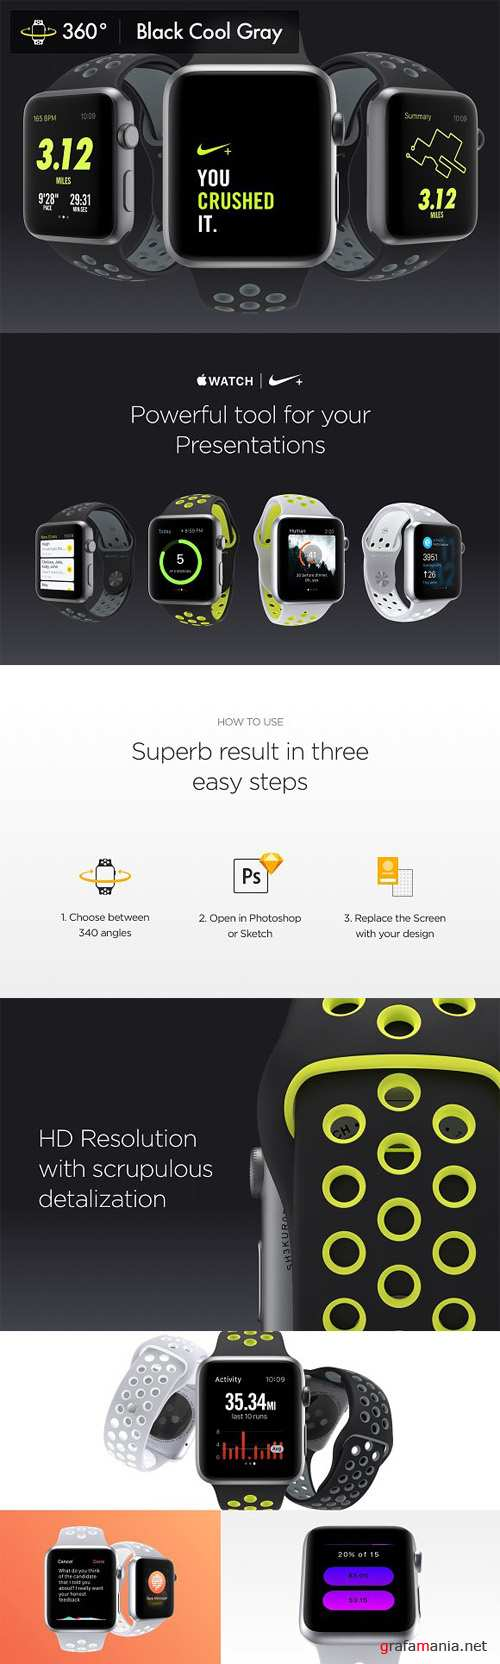 340 Apple Watch Cool Gray Mockups 1543397